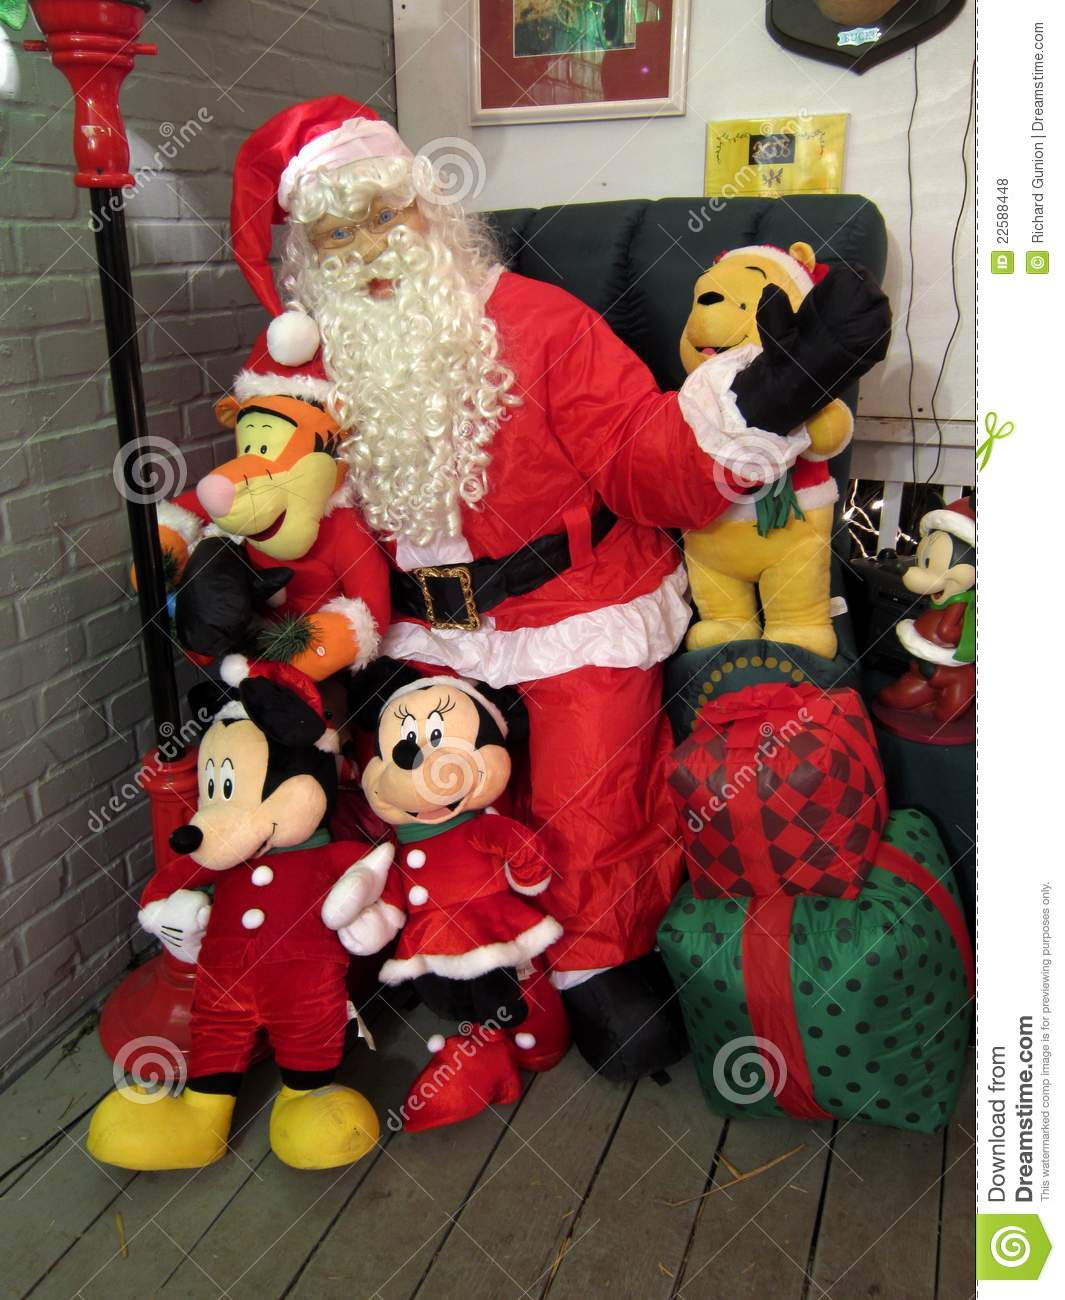 Populaire Santa Claus And Mickey Mouse Editorial Stock Photo - Image: 22588448 OC95